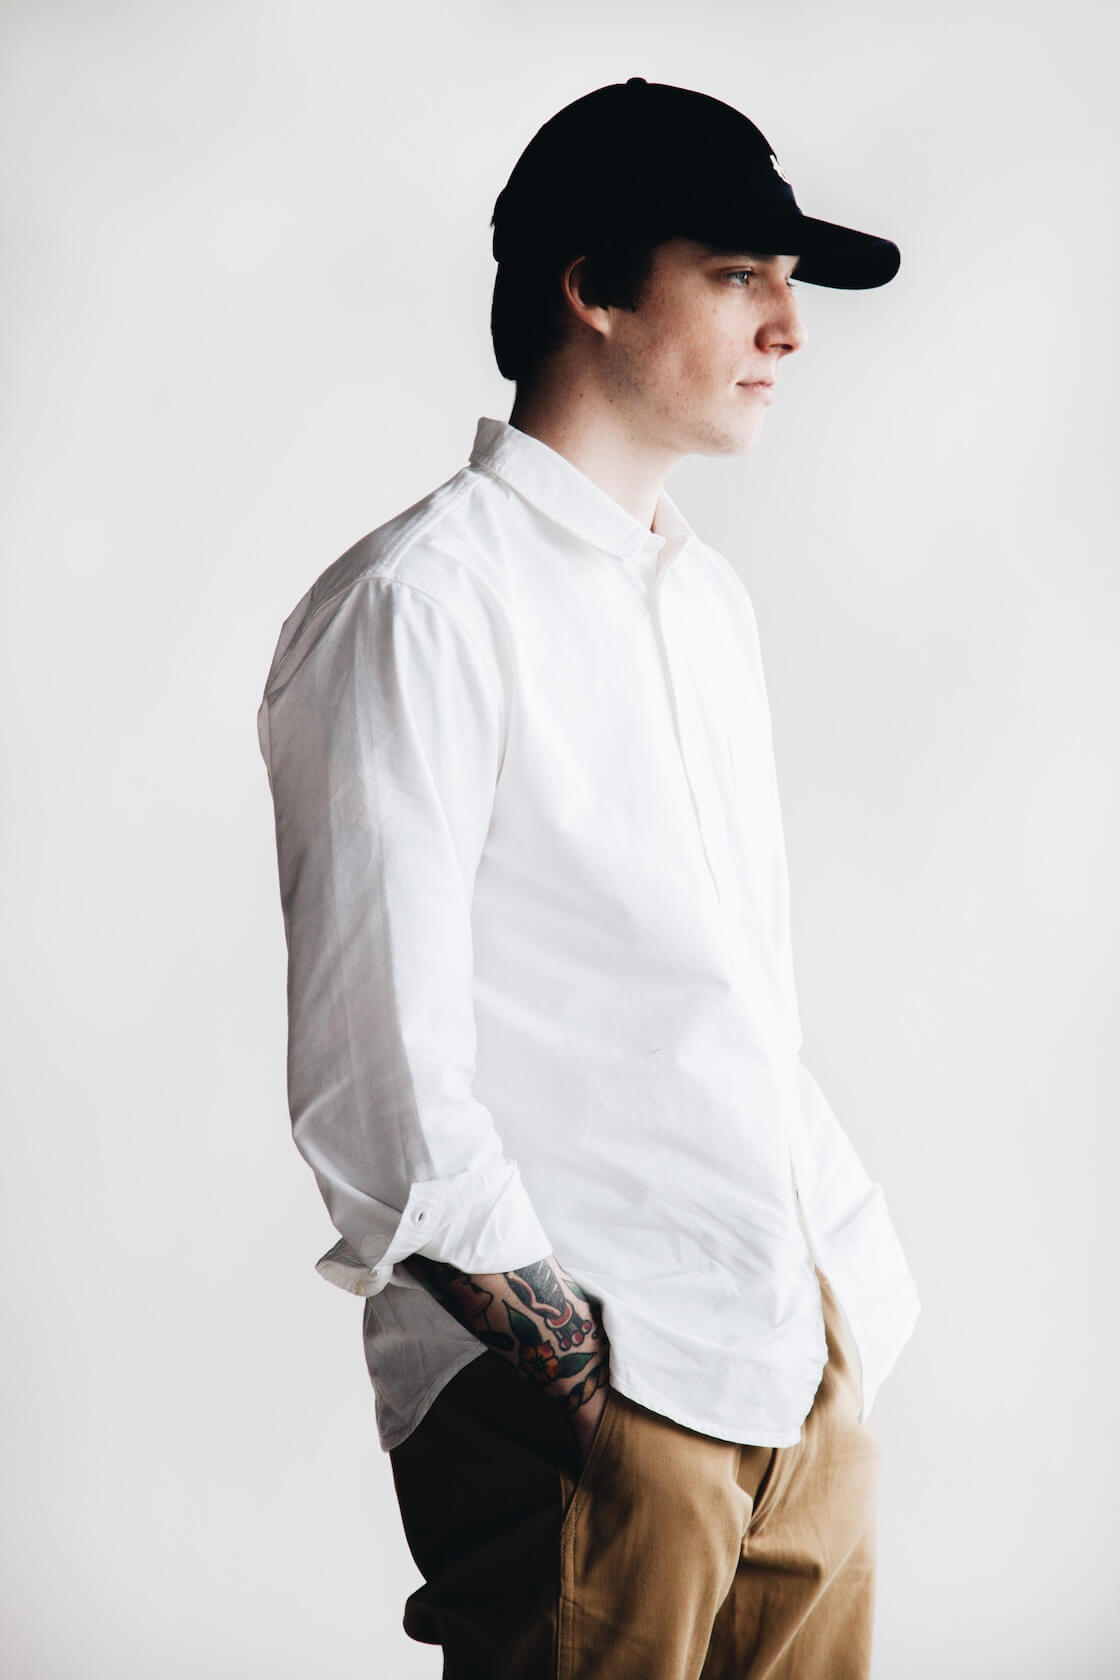 canoe club x corridor white oxford shirt, nanamica chino cap, an orslow army trousers on body